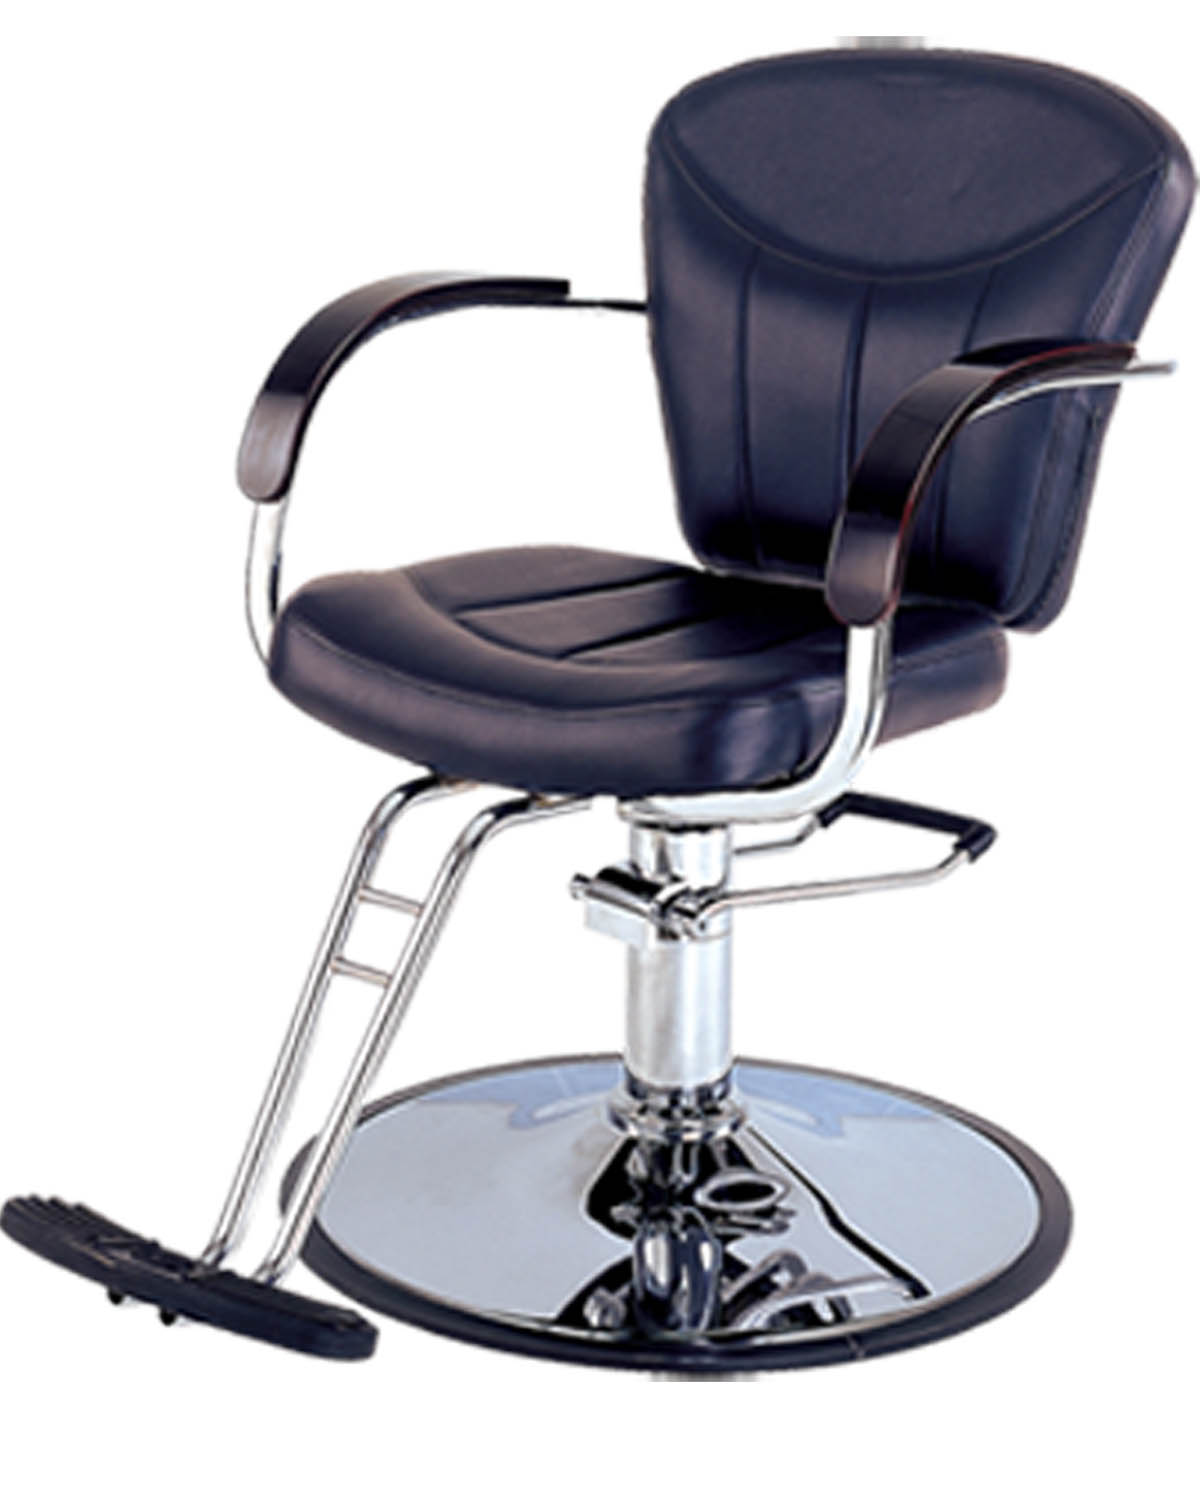 Cosmetology Chair Free Salon Items Cliparts Download Free Clip Art Free